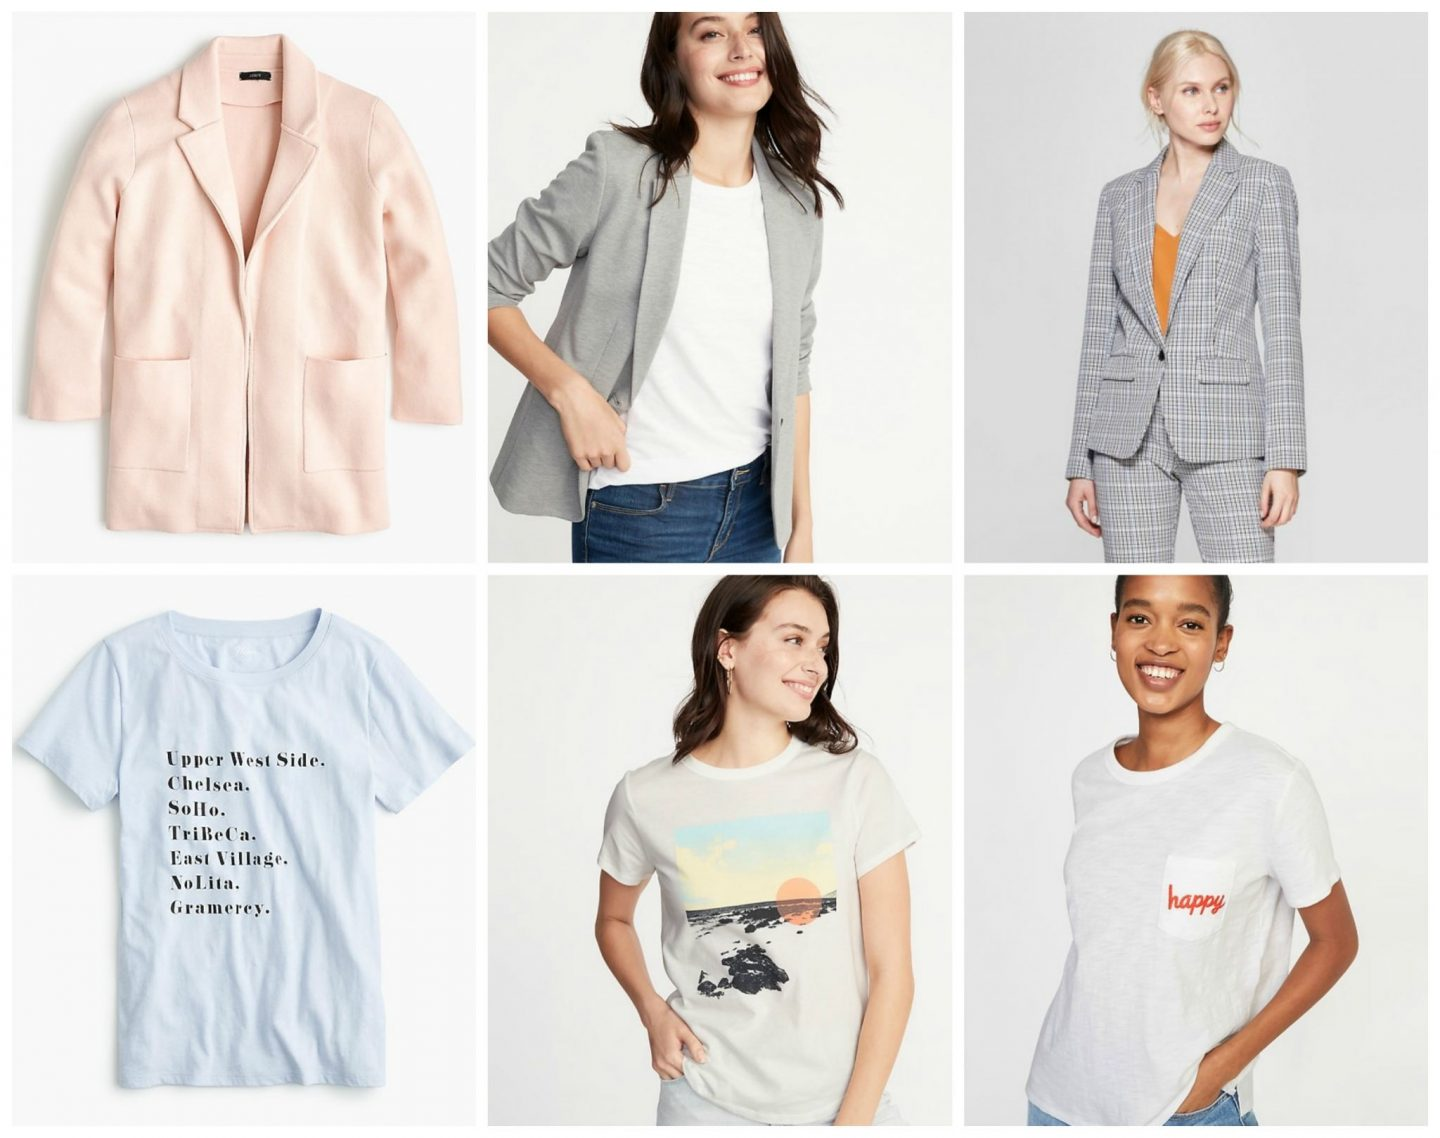 Tuesday's Cravings: Blazers and Graphic Tees